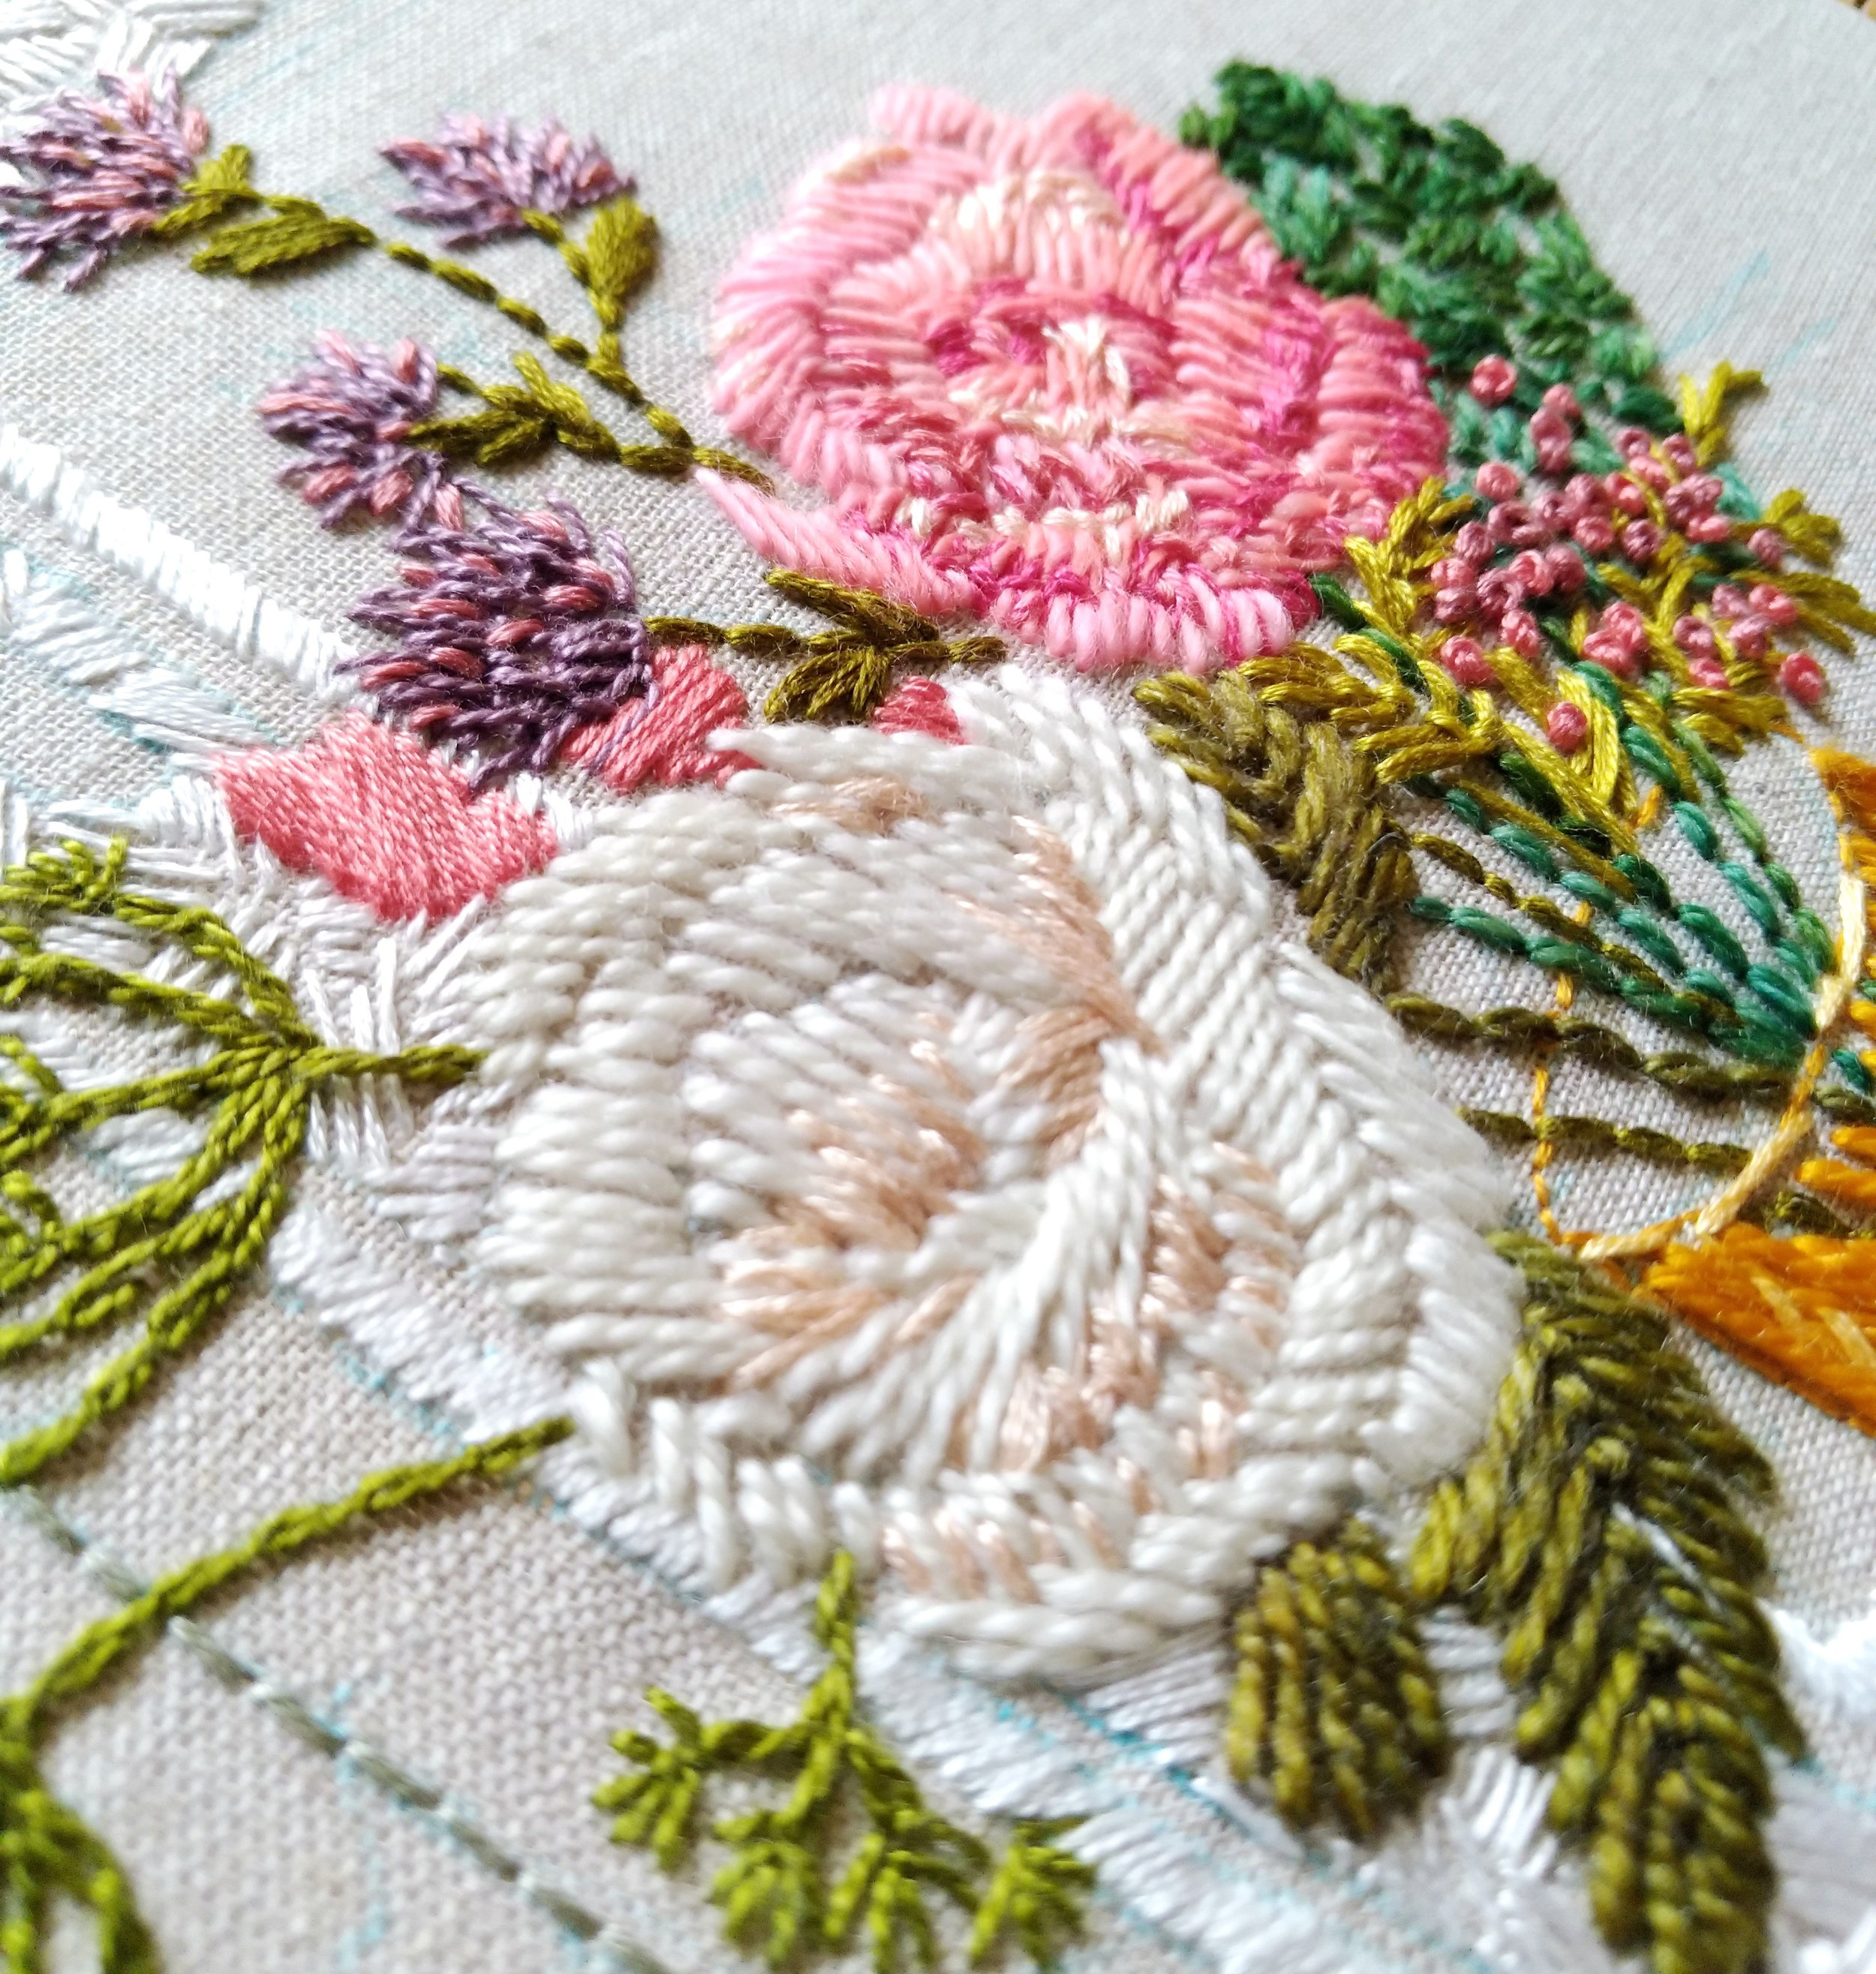 A shot of my current embroidery in process - by Amanda Farquharson